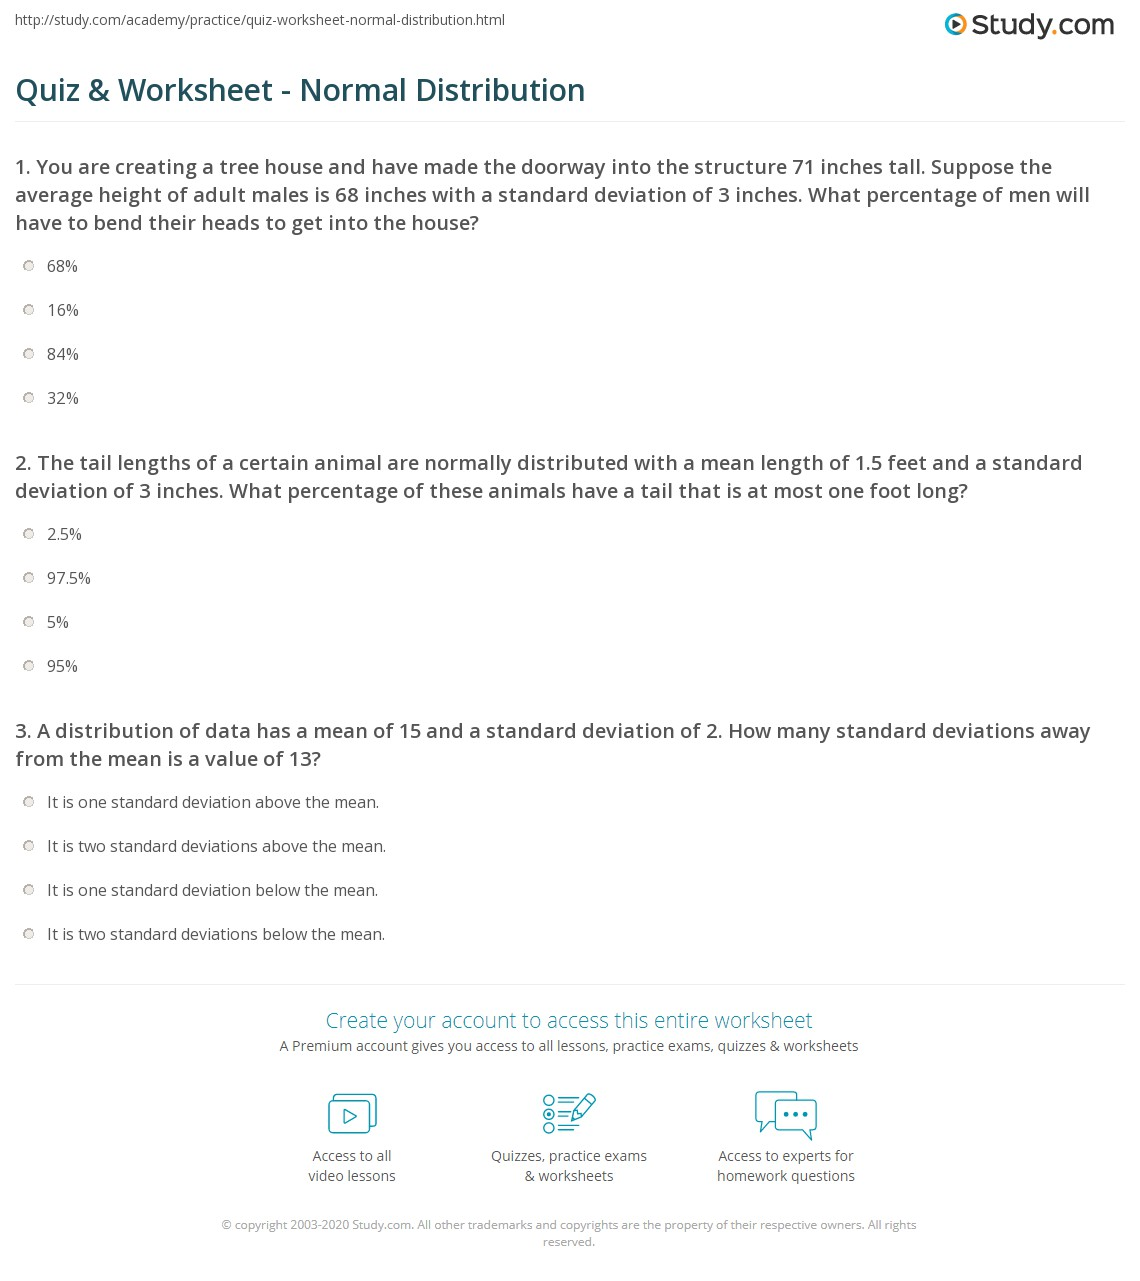 Worksheets Empirical Rule Worksheet quiz worksheet normal distribution study com 1 the tail lengths of a certain animal are normally distributed with mean length 5 feet and standard deviation 3 inches